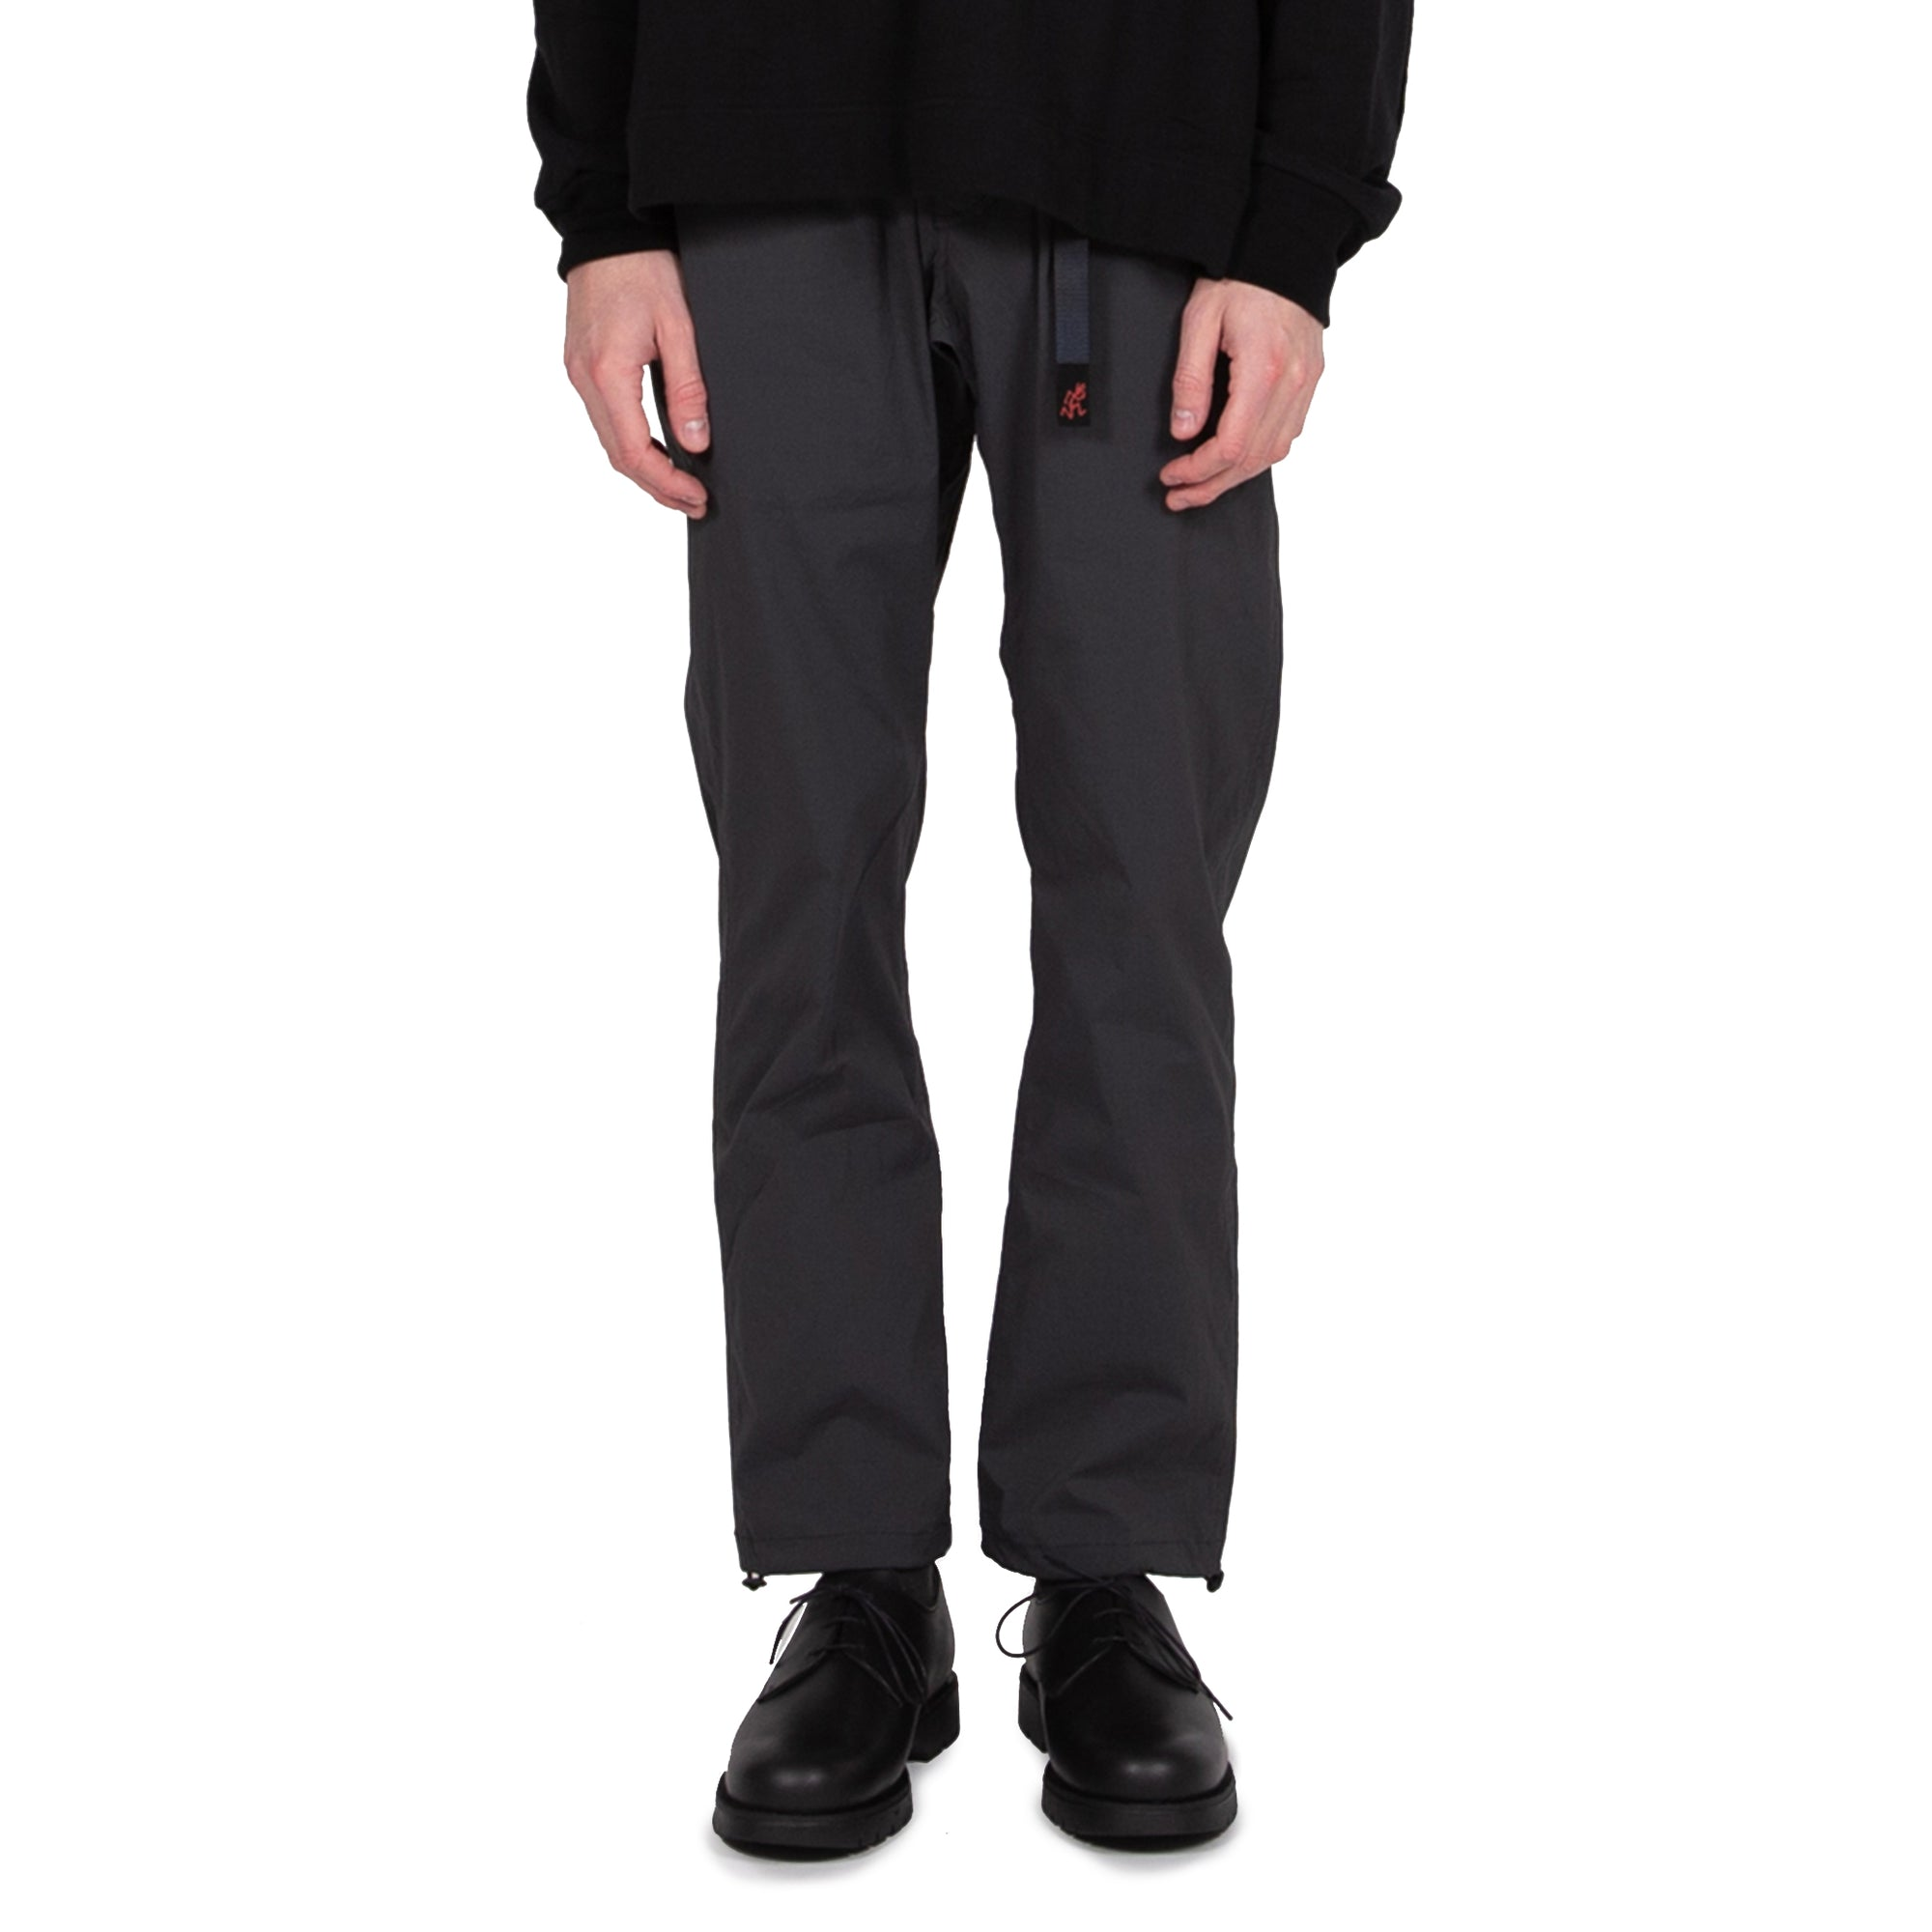 Gramicci Whitney Cordura Pant in Black rain gear all weather front